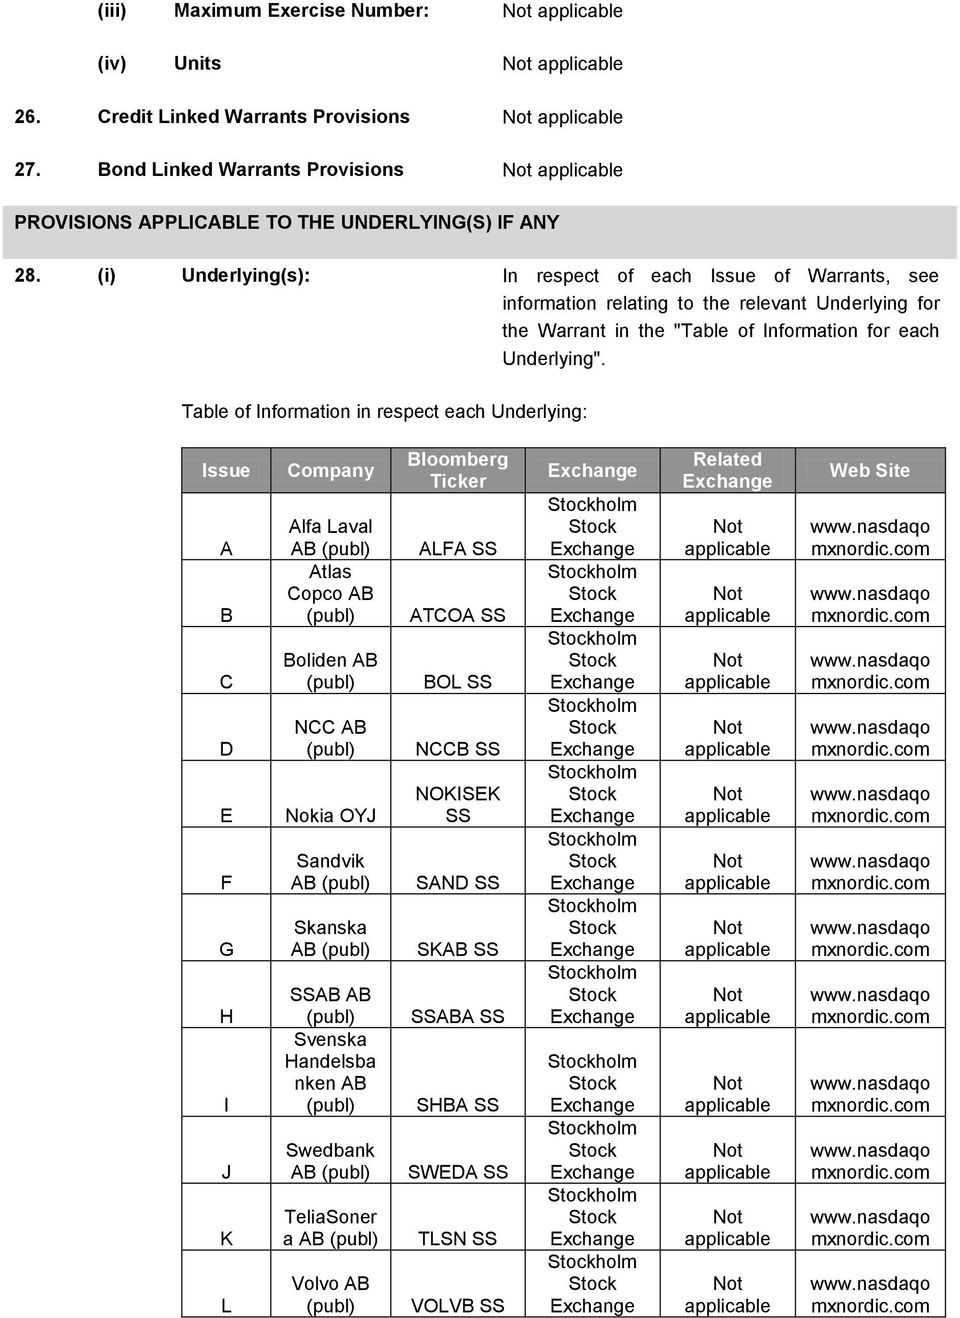 "(i) Underlying(s): In respect of each Issue of Warrants, see information relating to the relevant Underlying for the Warrant in the ""Table of Information for each Underlying""."